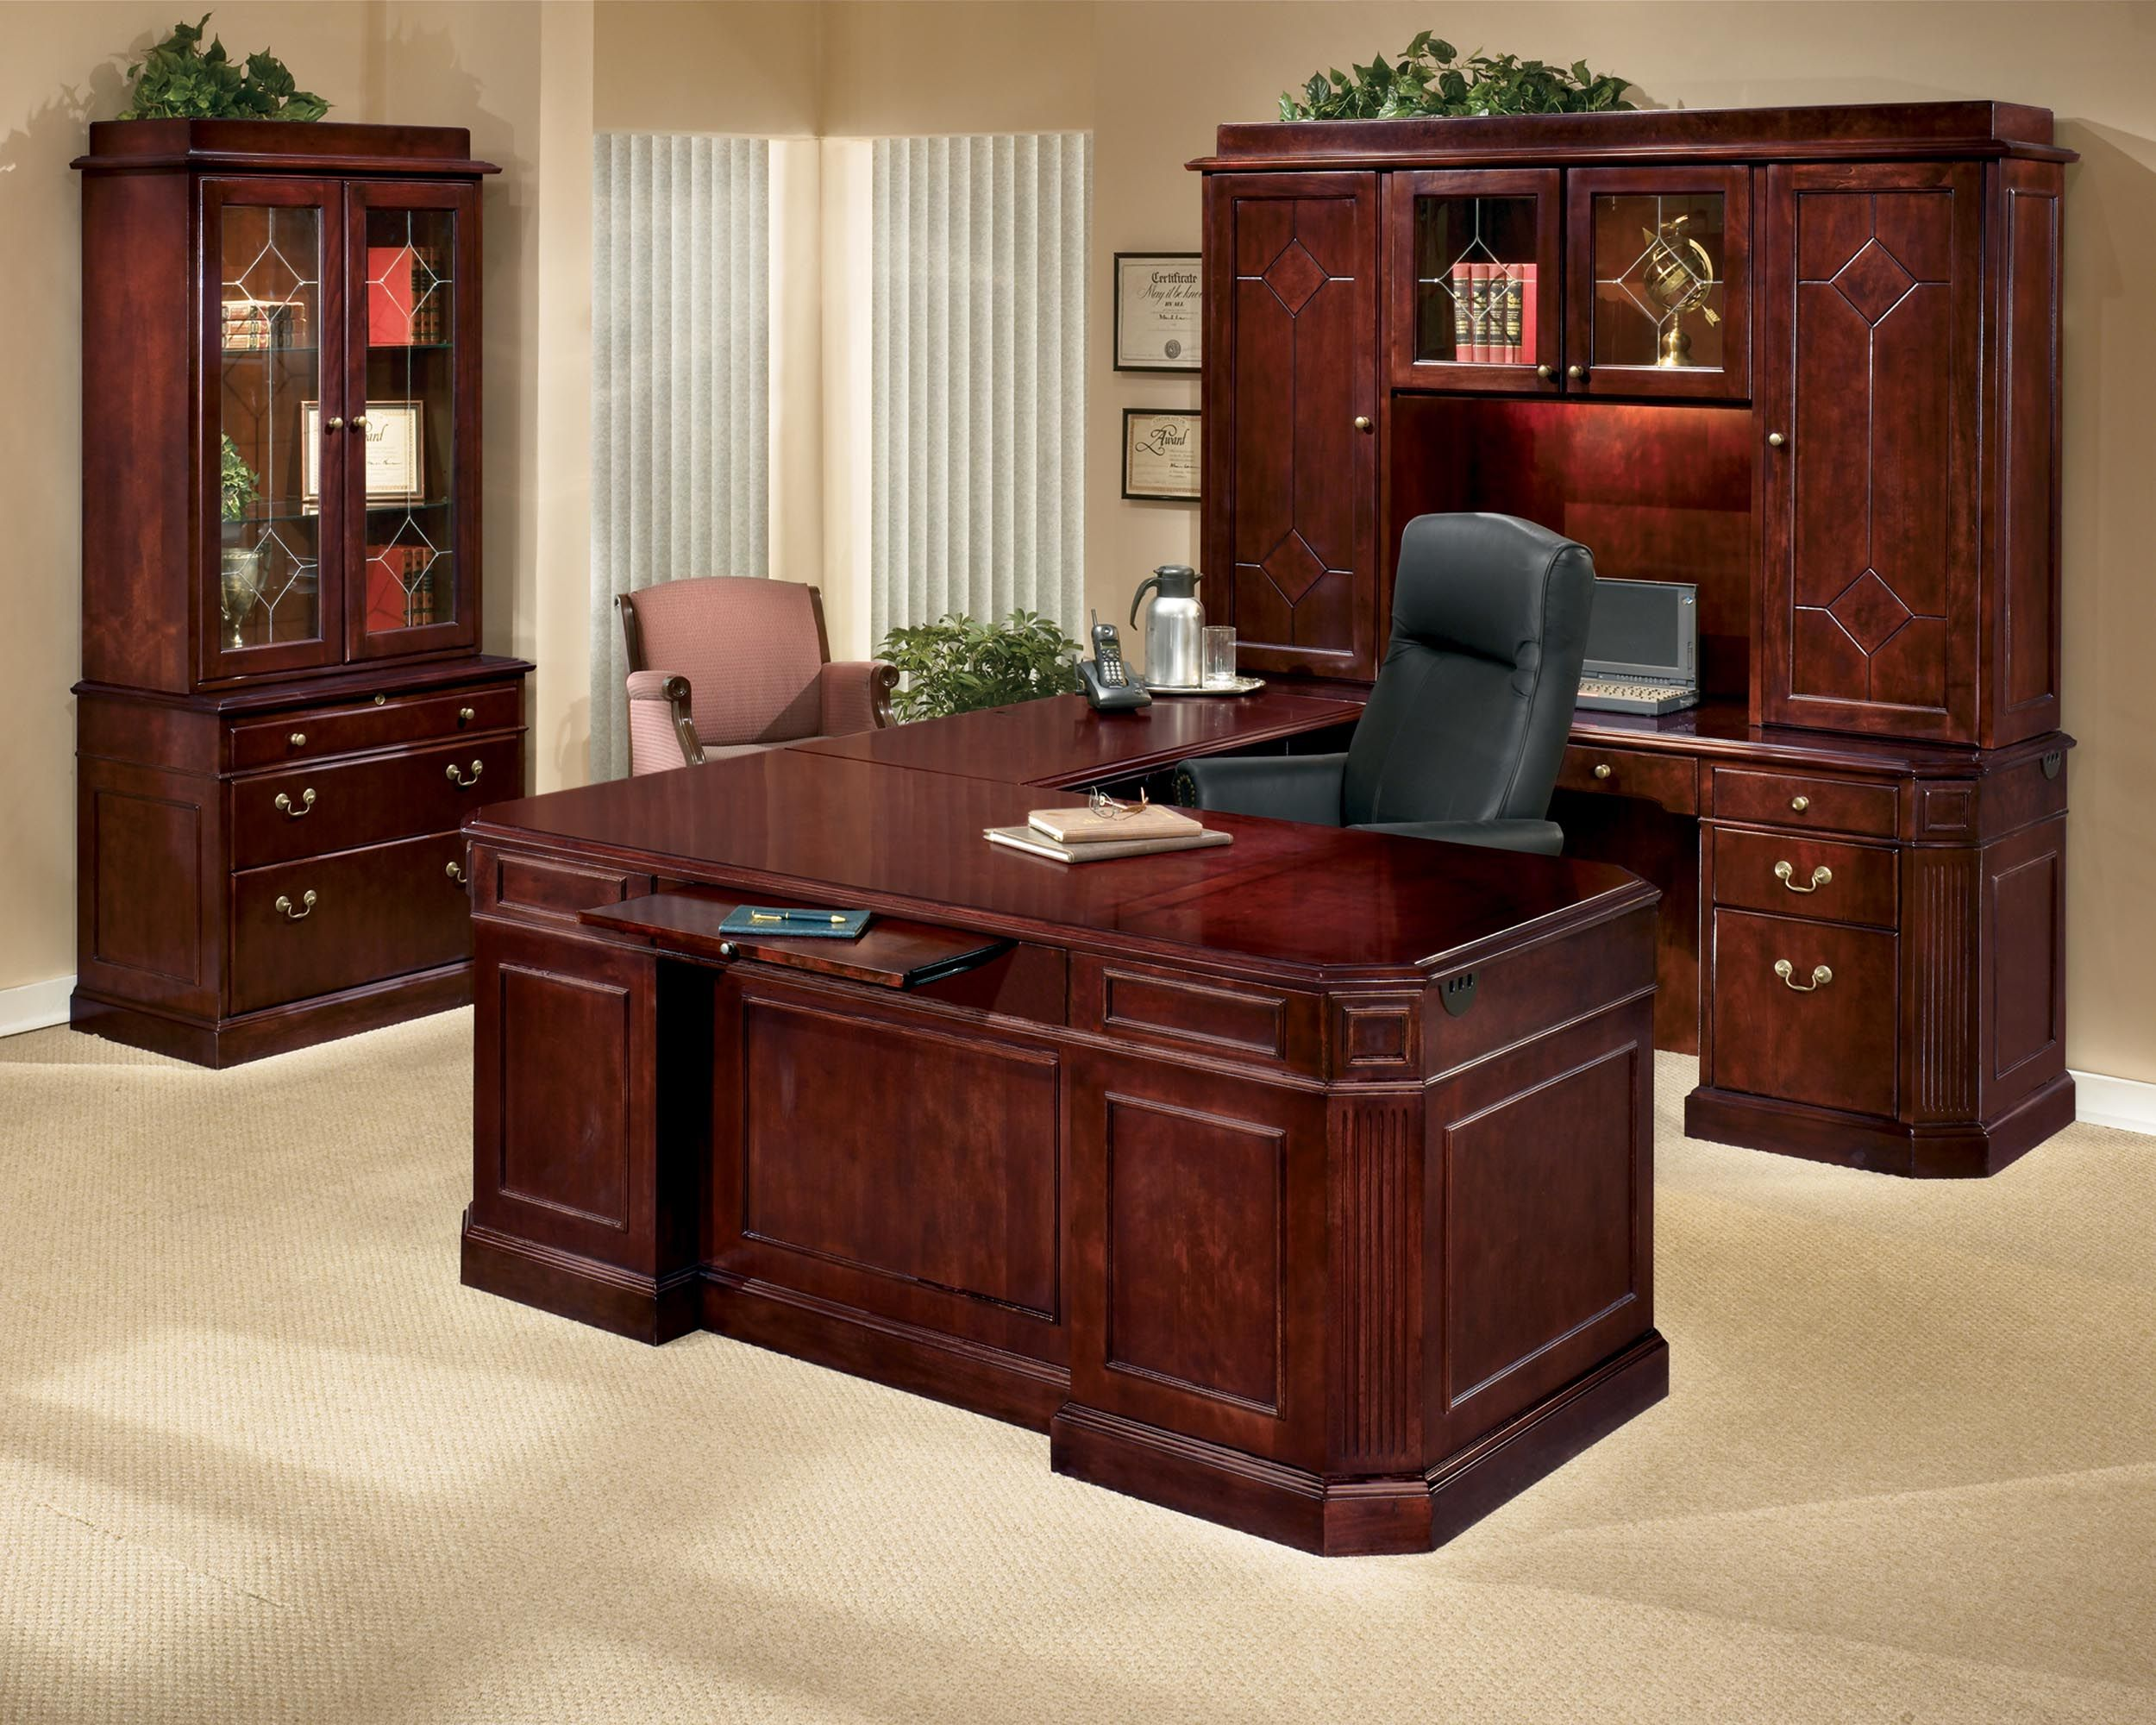 Best quality oxmoor private office furniture available through